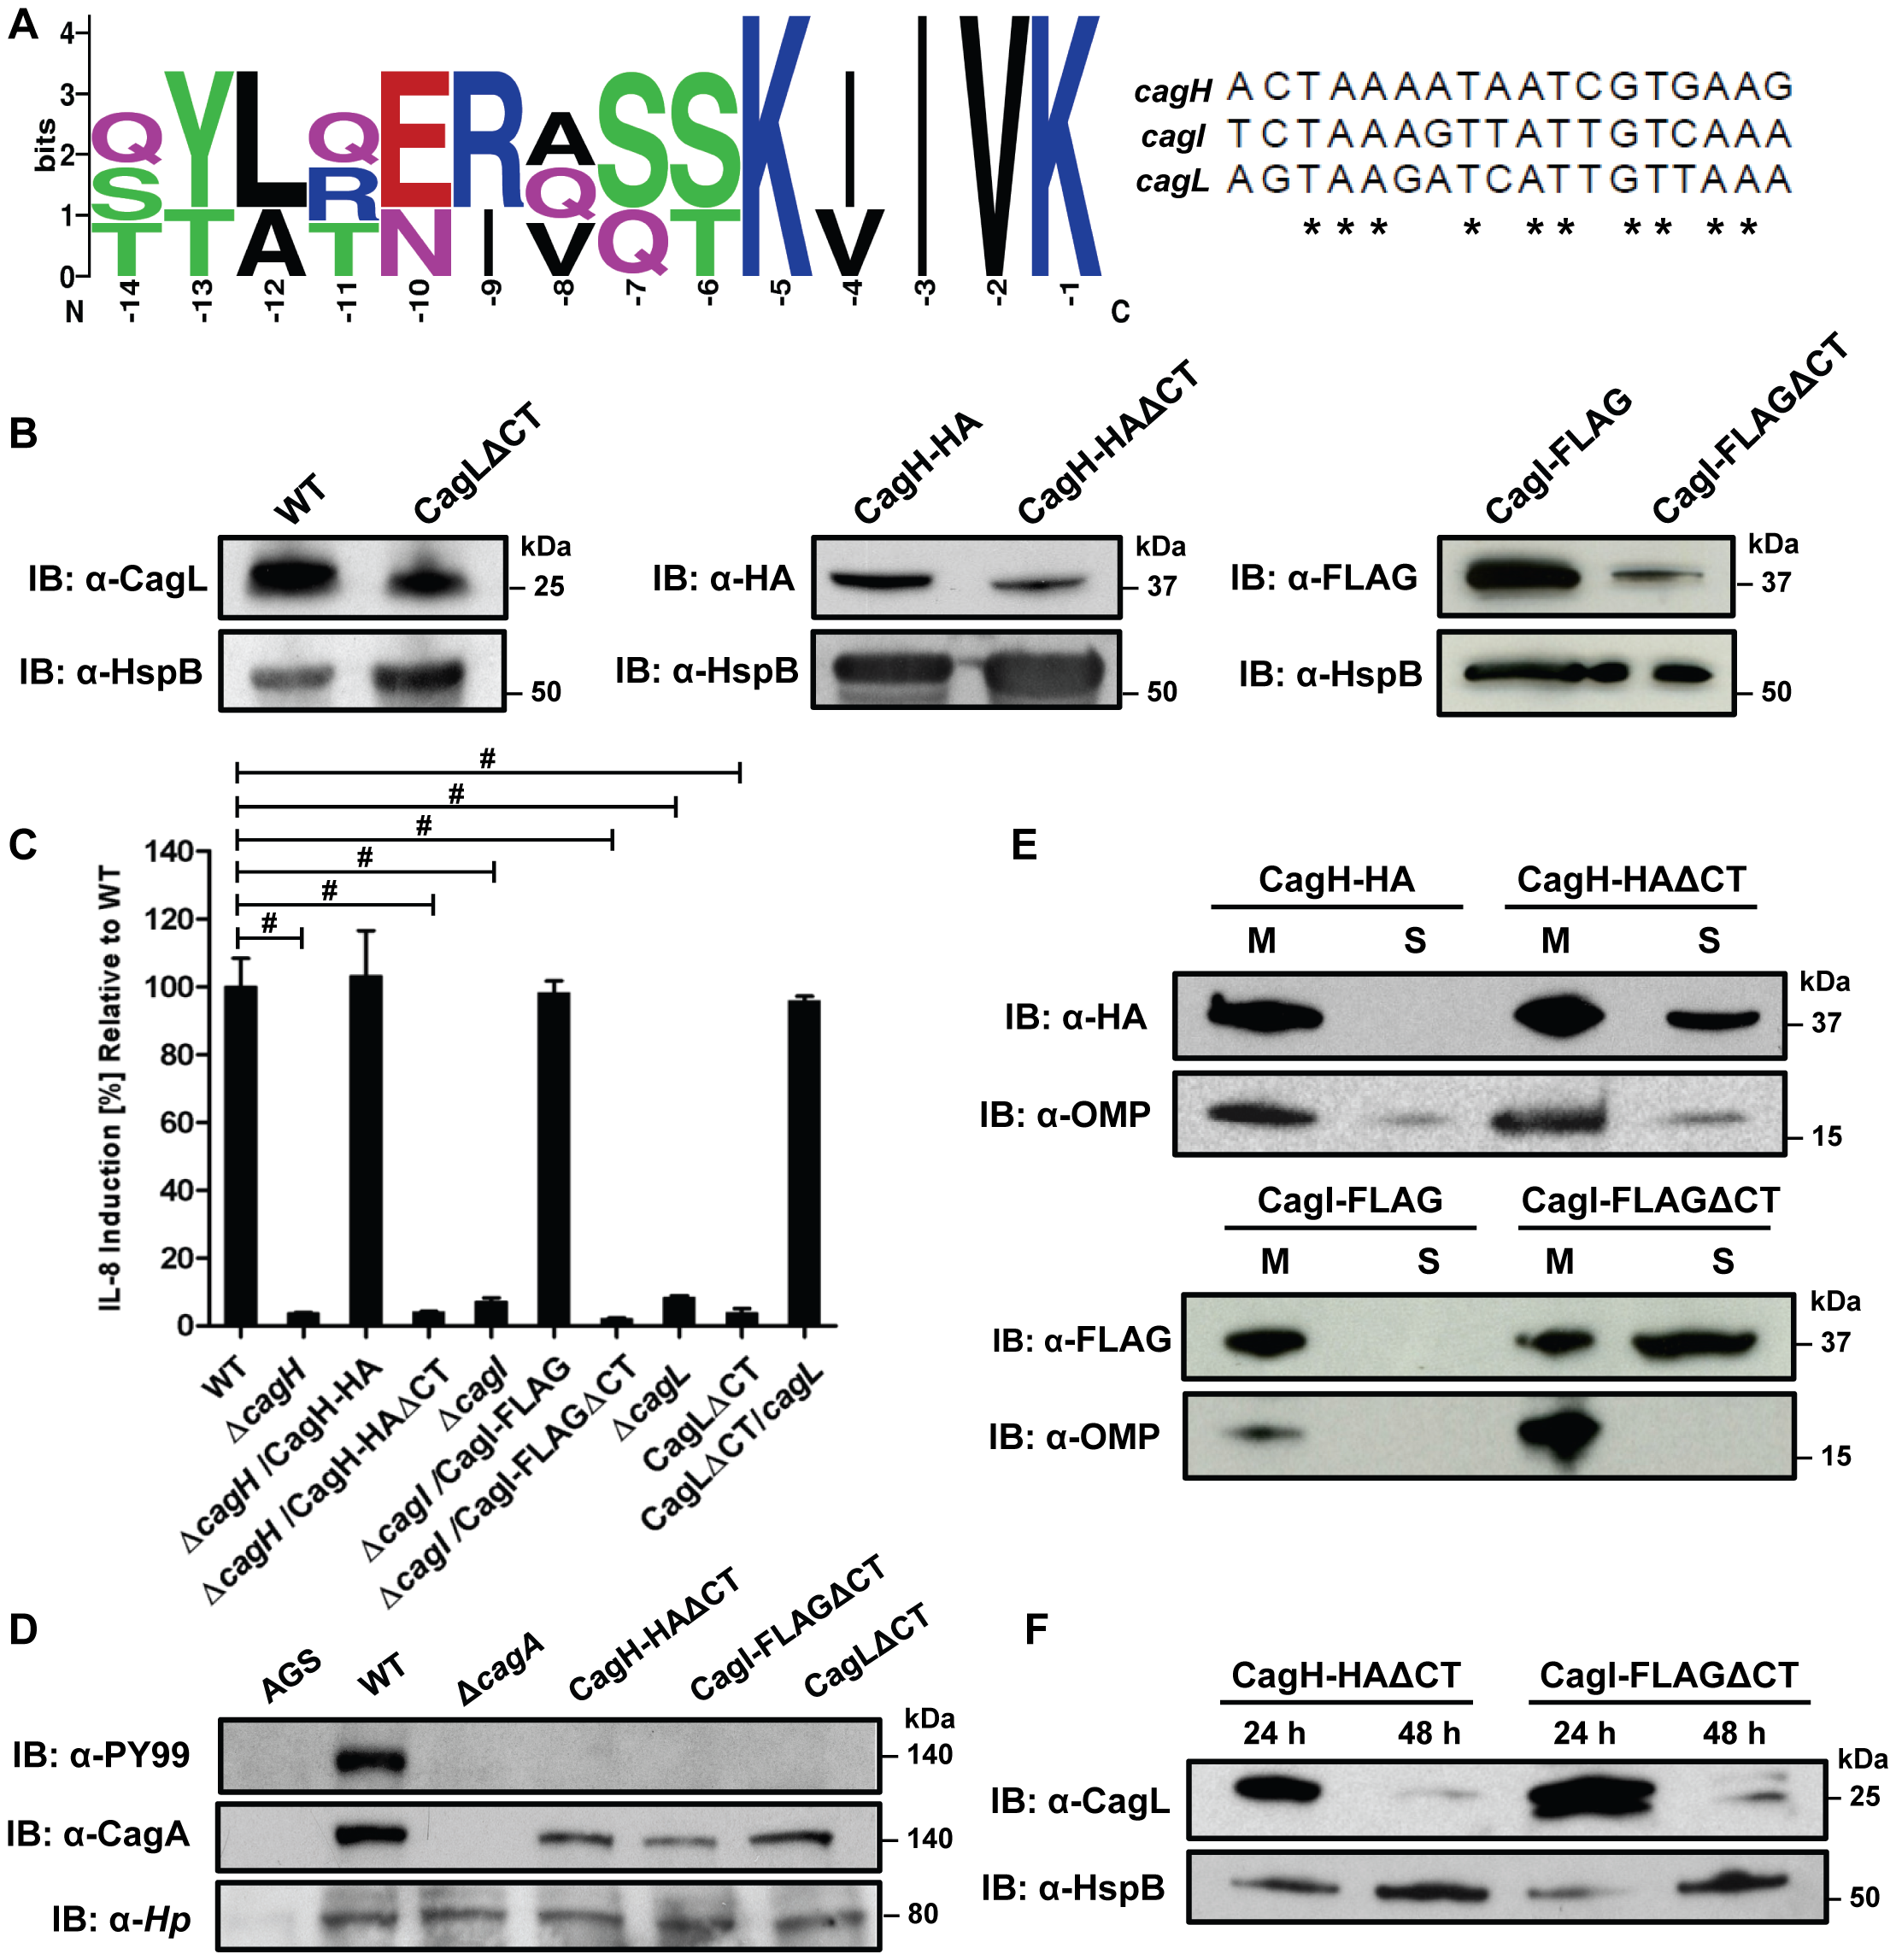 Analysis of a conserved C-terminal motif in CagH, CagI, and CagL.